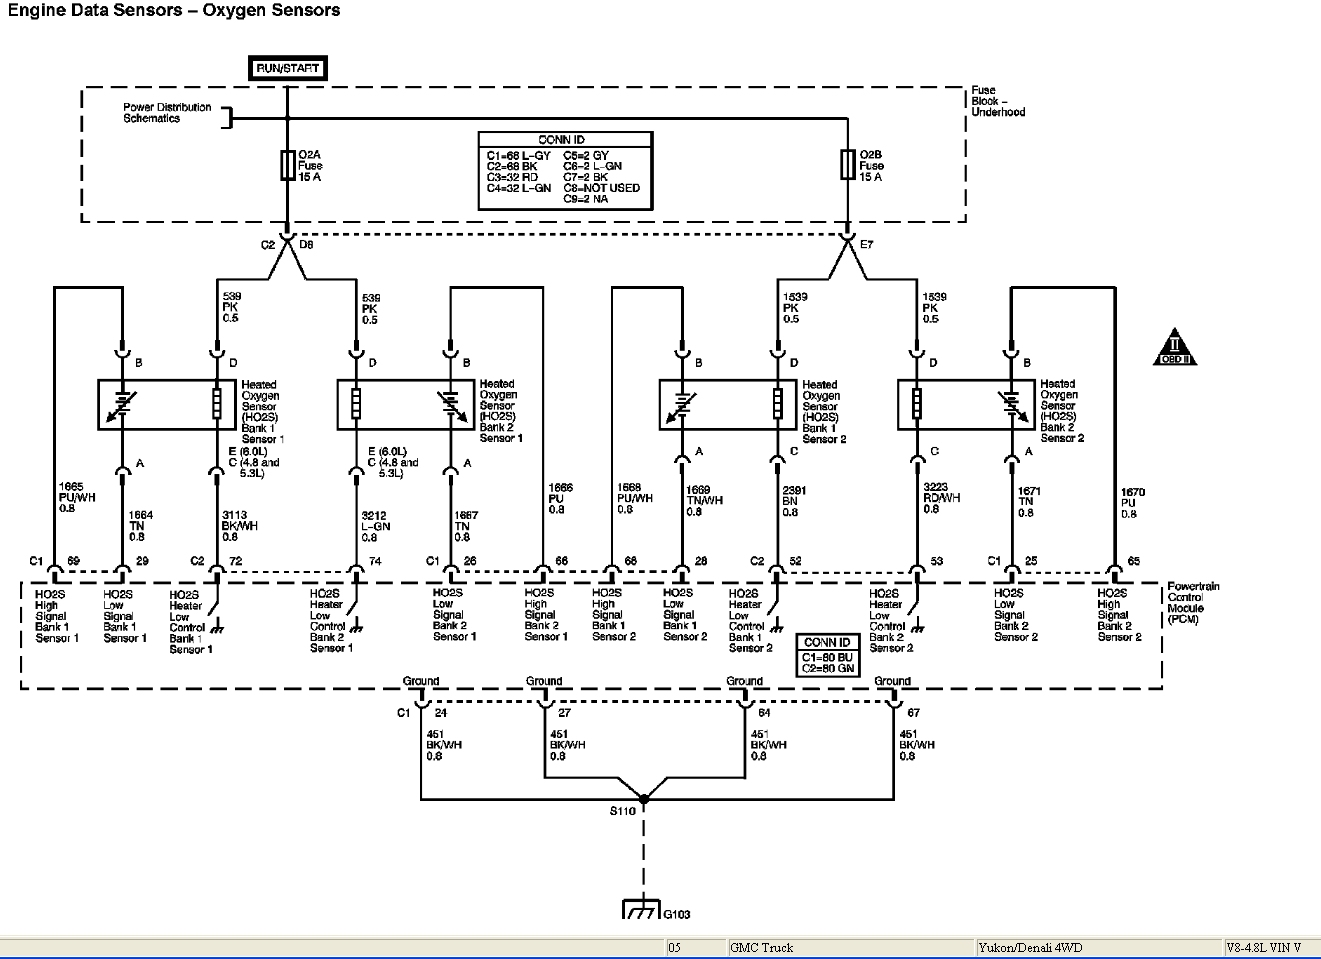 [DIAGRAM] Wiring Diagram For Bosch O2 Sensor FULL Version